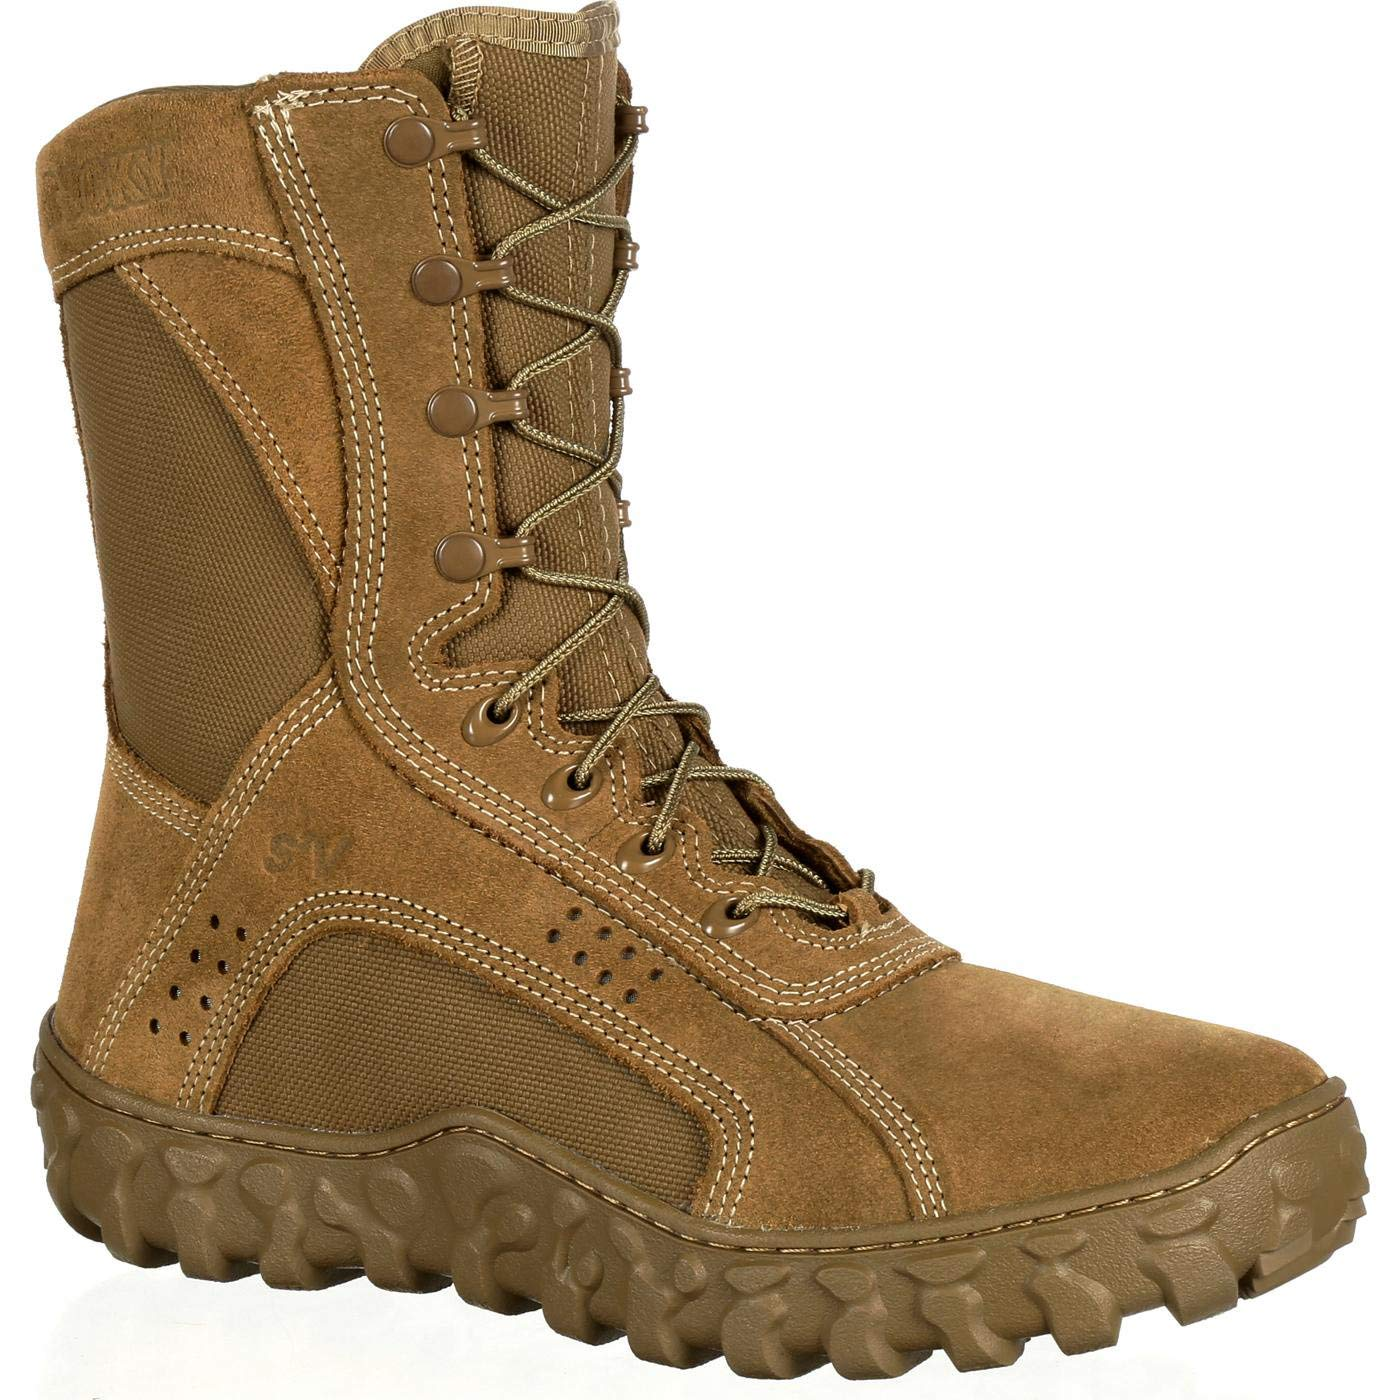 ROCKY Men's RKC050 Military and Tactical Boot, Coyote Brown, 10.5 M US by ROCKY